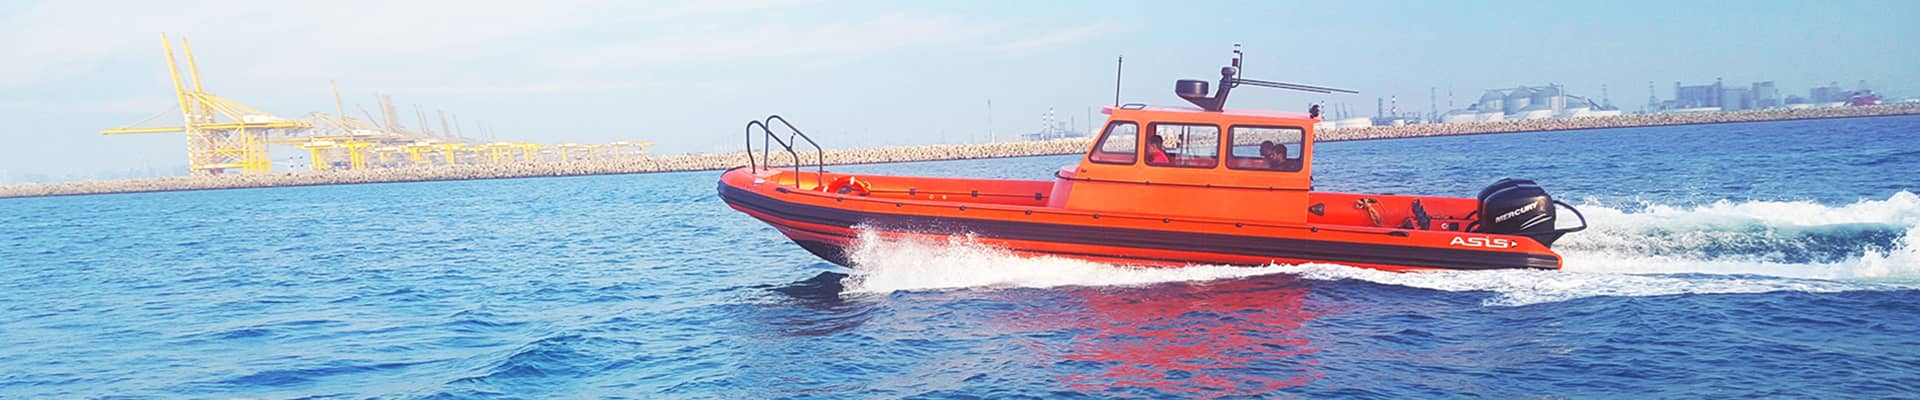 sail-support-towing-rigid-inflatable-boats